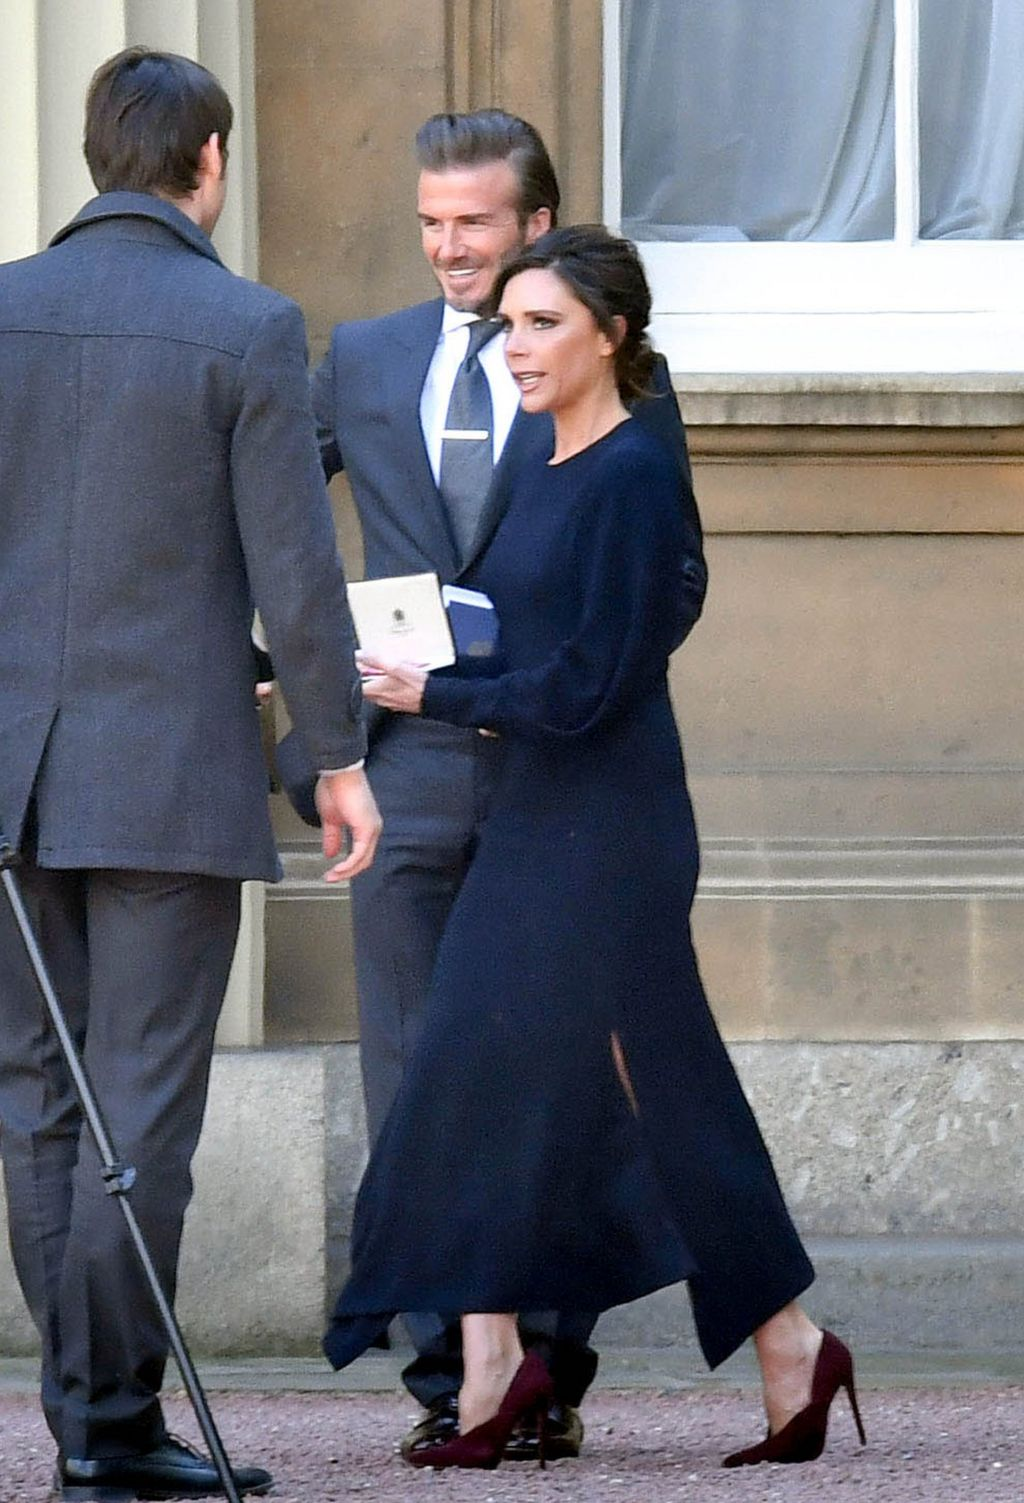 Victoria and David Beckham outside of Buckingham Palace after she received her OBE